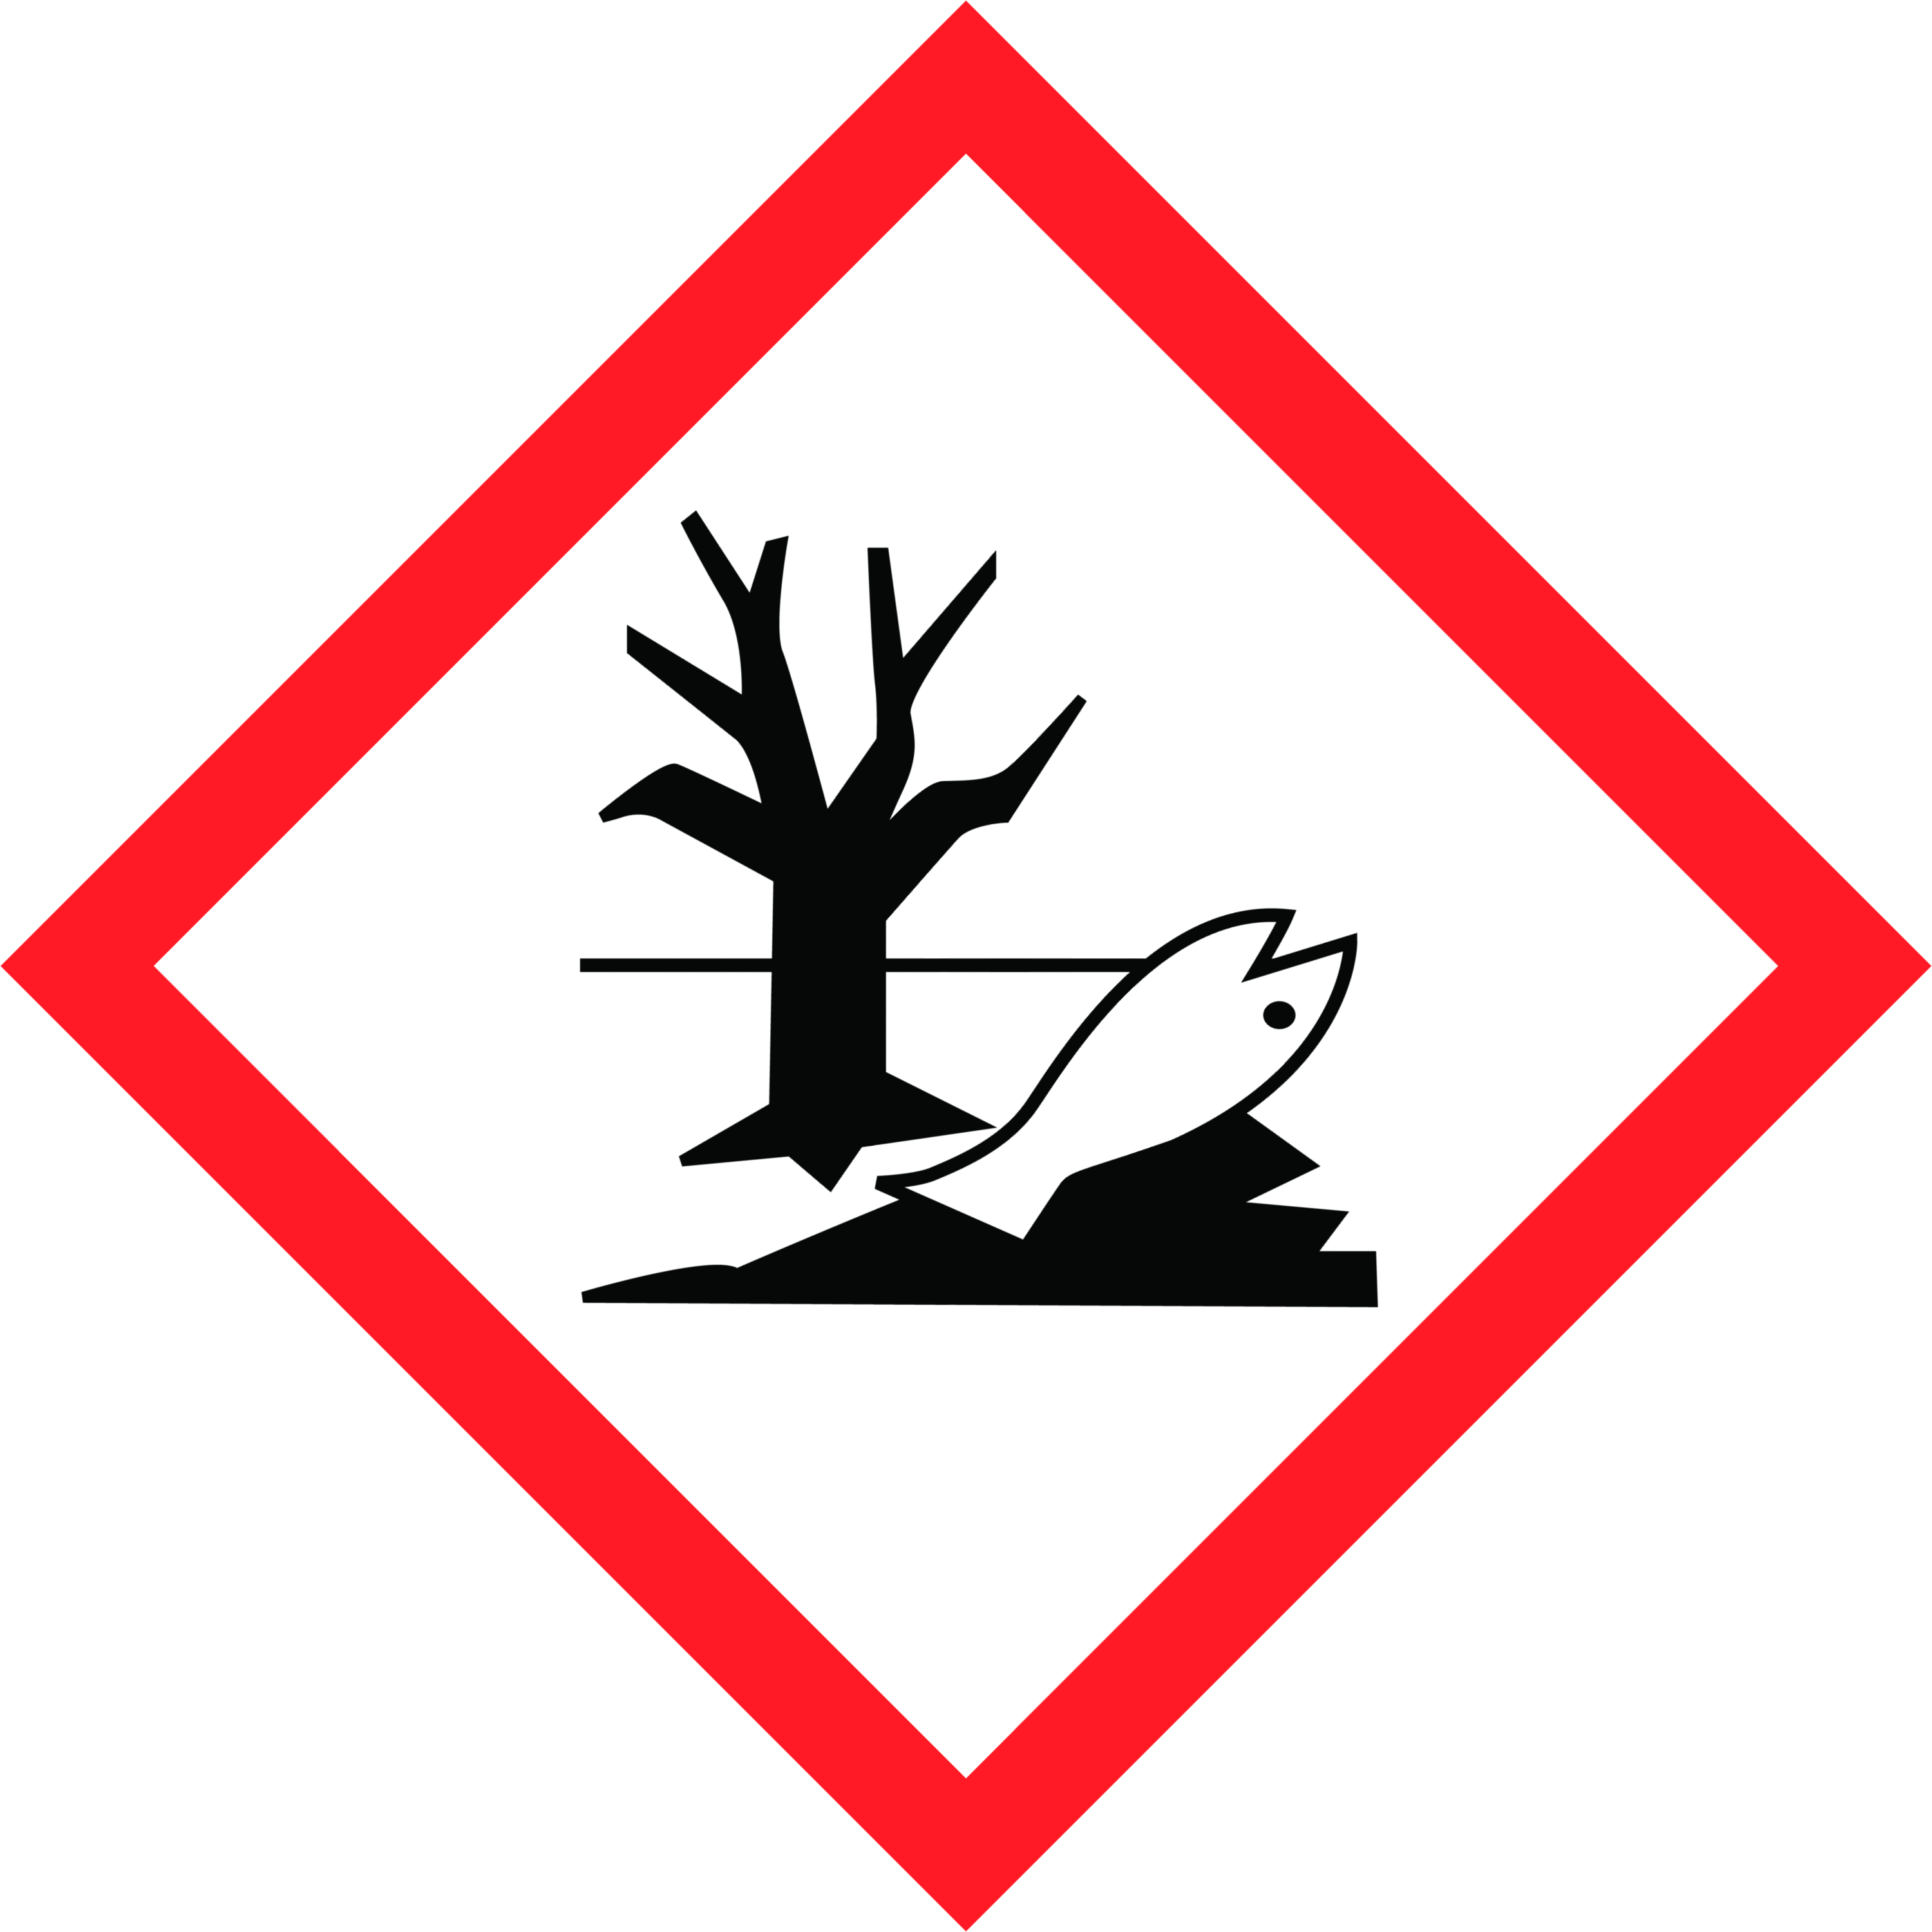 ghs hazard pictograms for download on